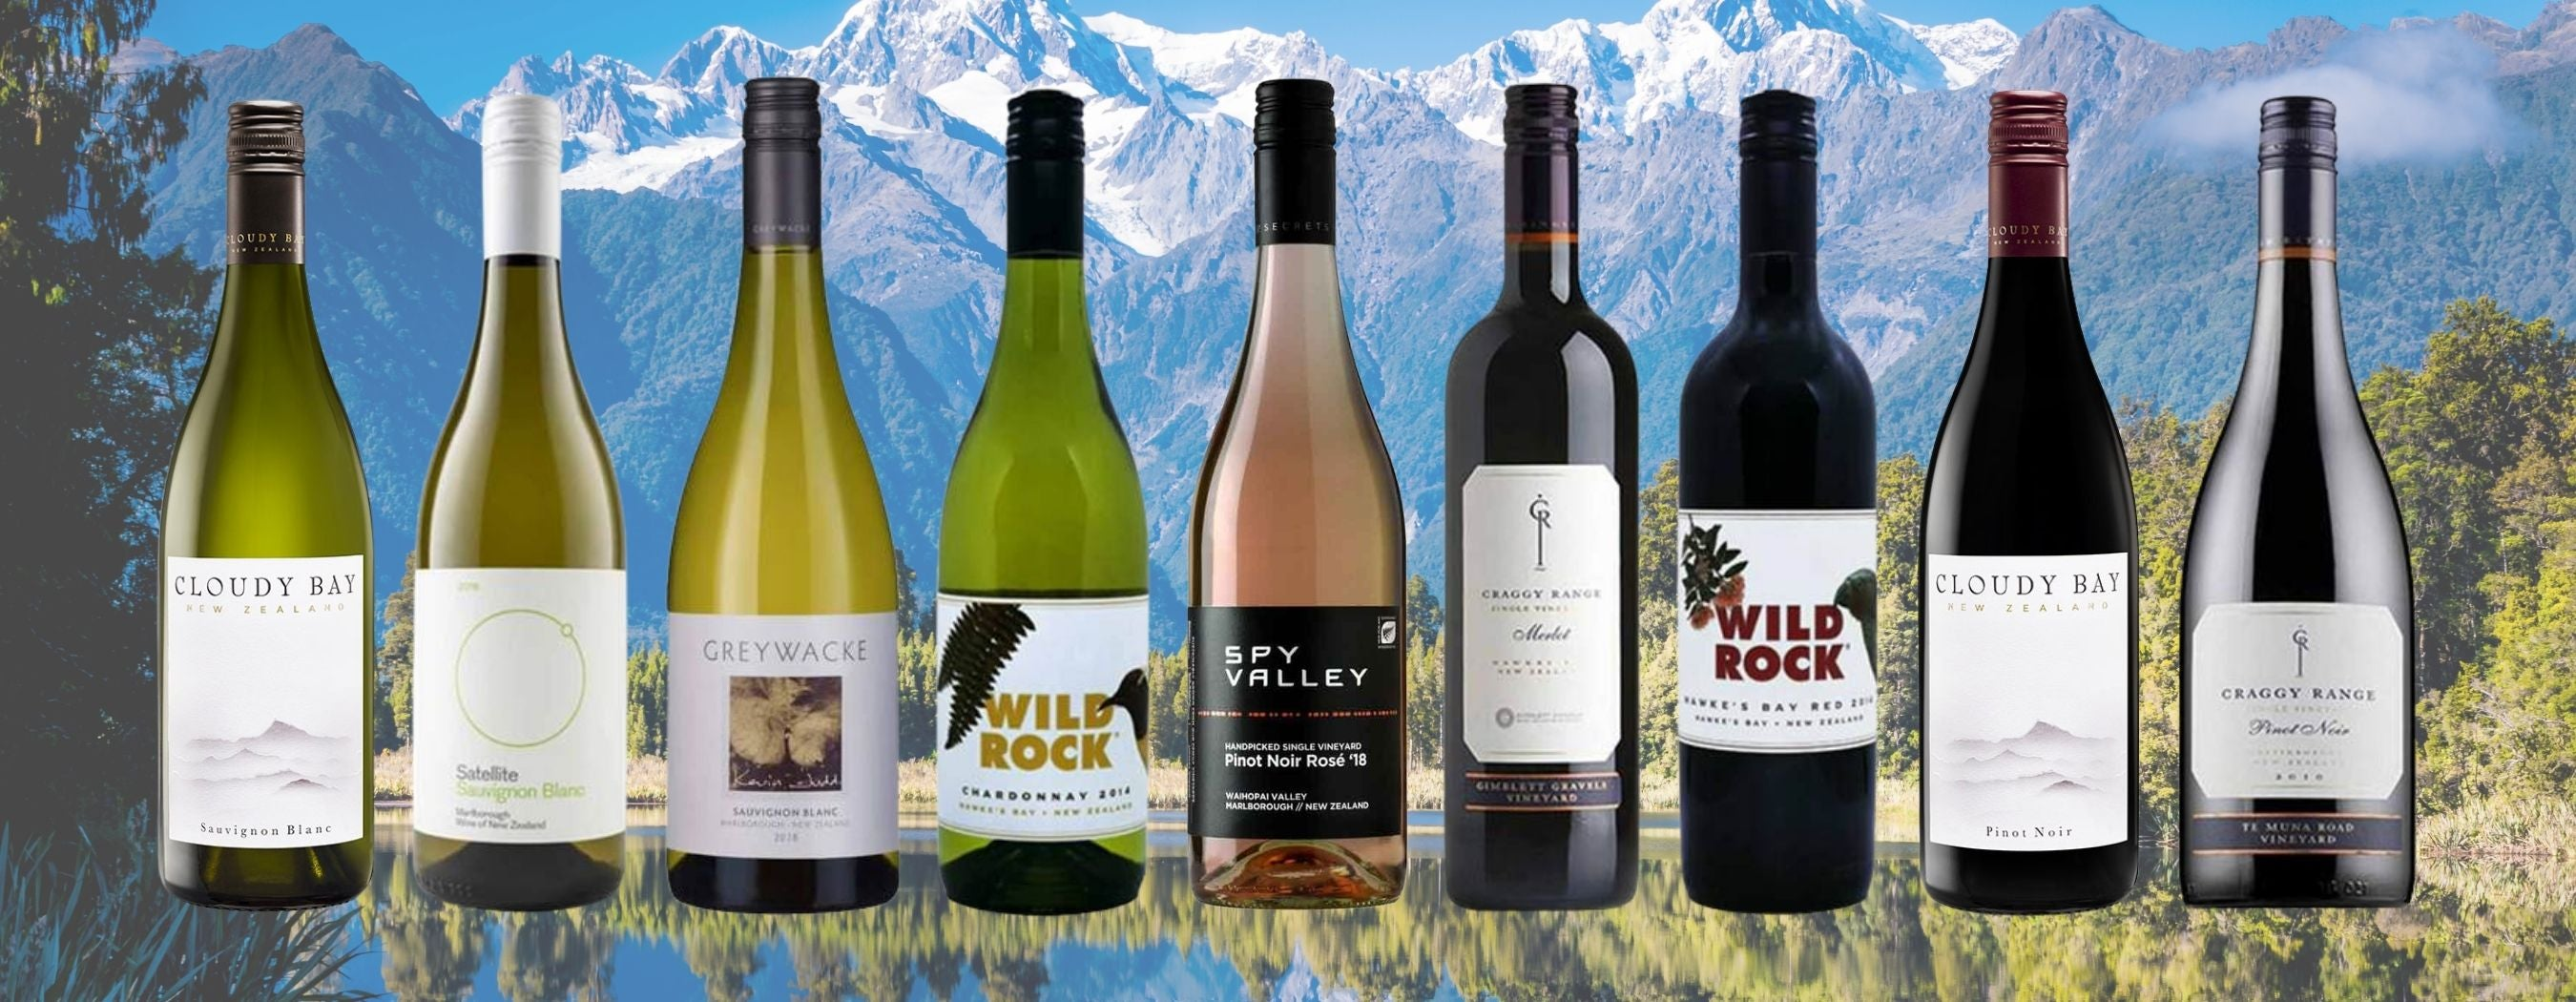 discover best selling wines from new zealand at best prices